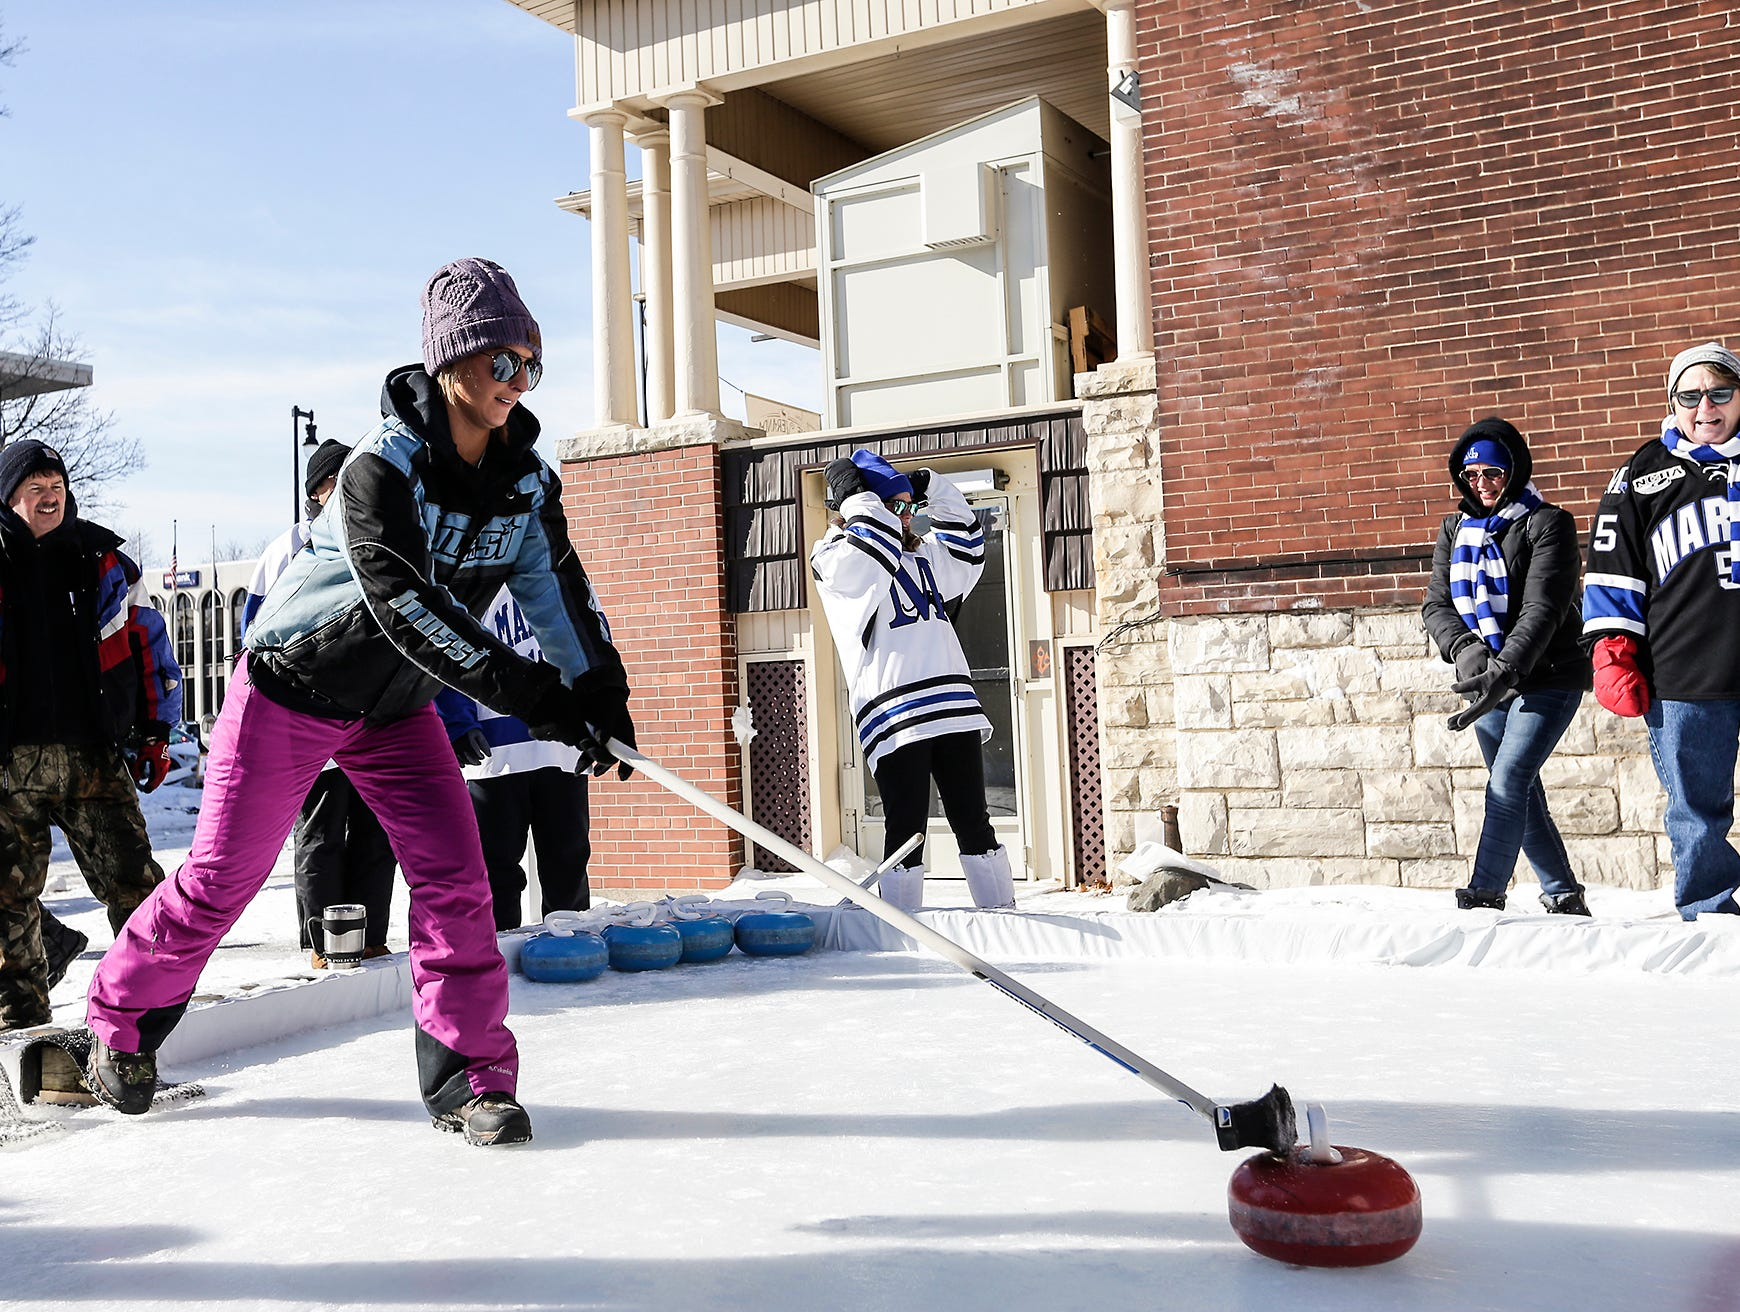 Dani Meyer of Plymouth pushes a curling stone Saturday, February 9, 2019 in downtown Fond du Lac during Sturgeon Spectacular. Sturgeon Spectacular is a weeklong celebration of the lake sturgeon spearing season and includes events on and off the ice in the Fond du Lac area. Doug Raflik/USA TODAY NETWORK-Wisconsin